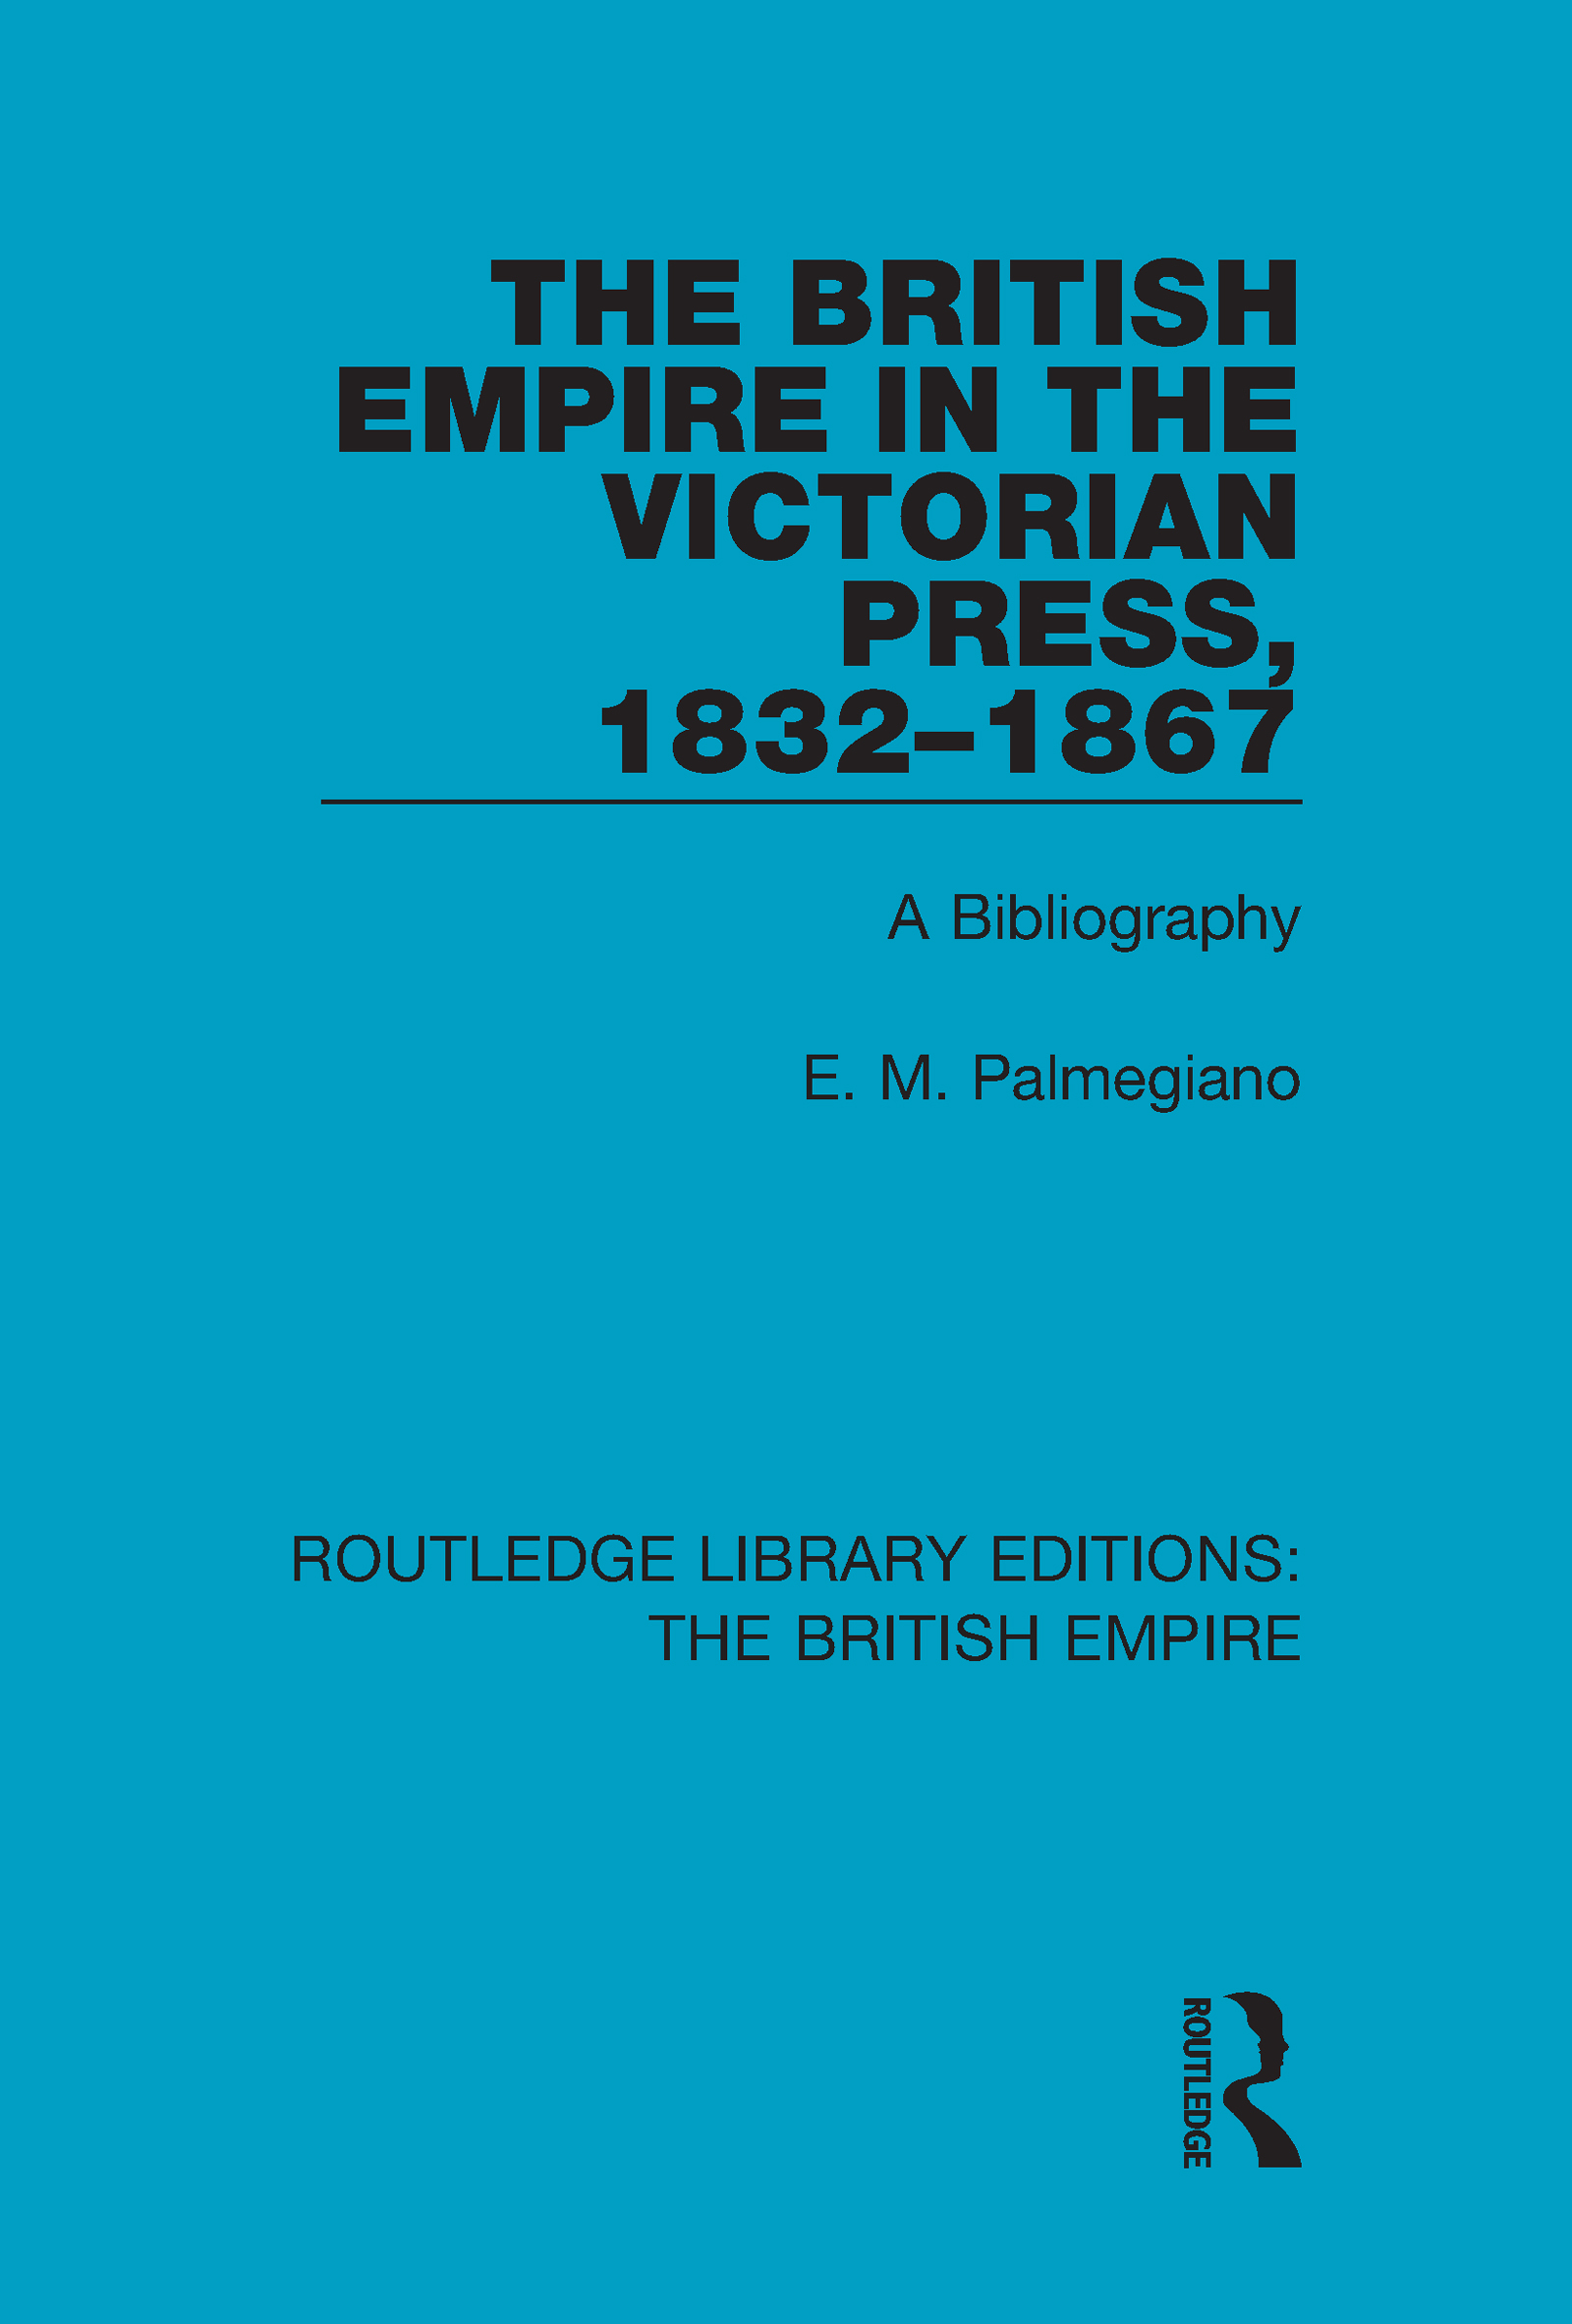 The British Empire in the Victorian Press, 1832-1867: A Bibliography book cover